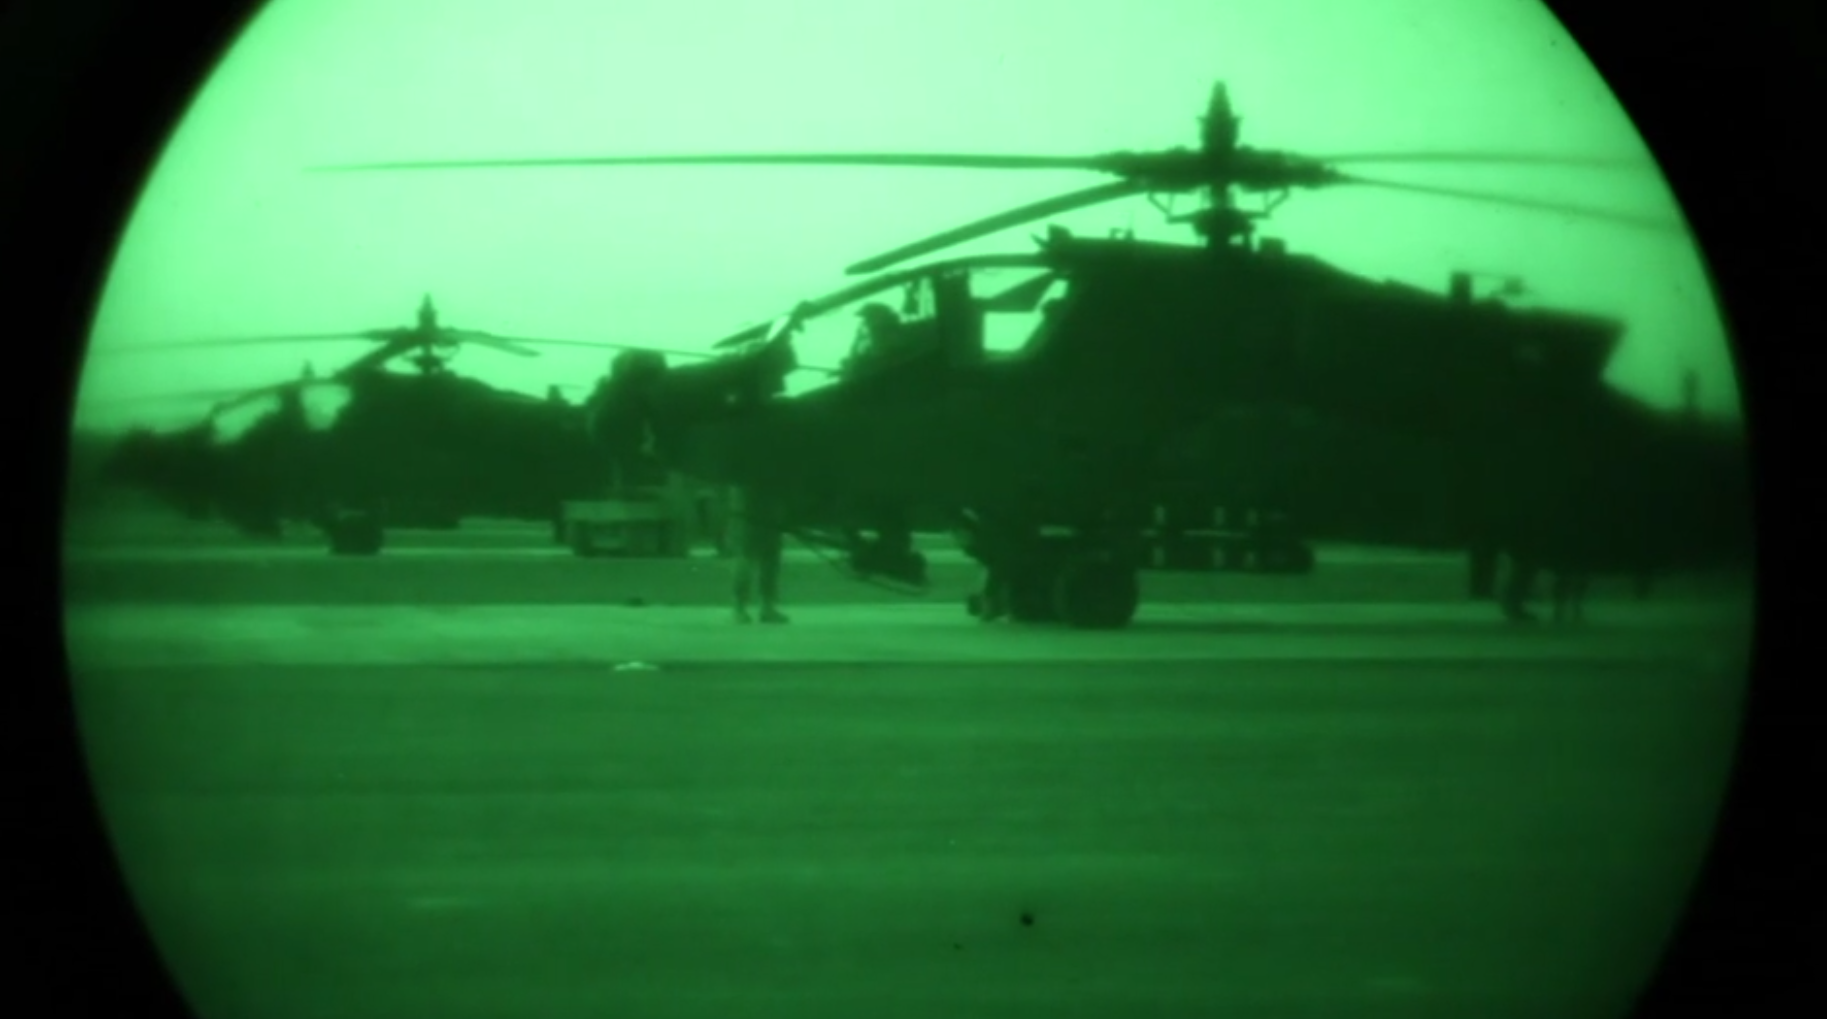 U.S. Army soldiers prepare AH-64E Apache for operation in Erbil, Iraq on January 10, 2017. (Photo taken from U.S. Army video.)